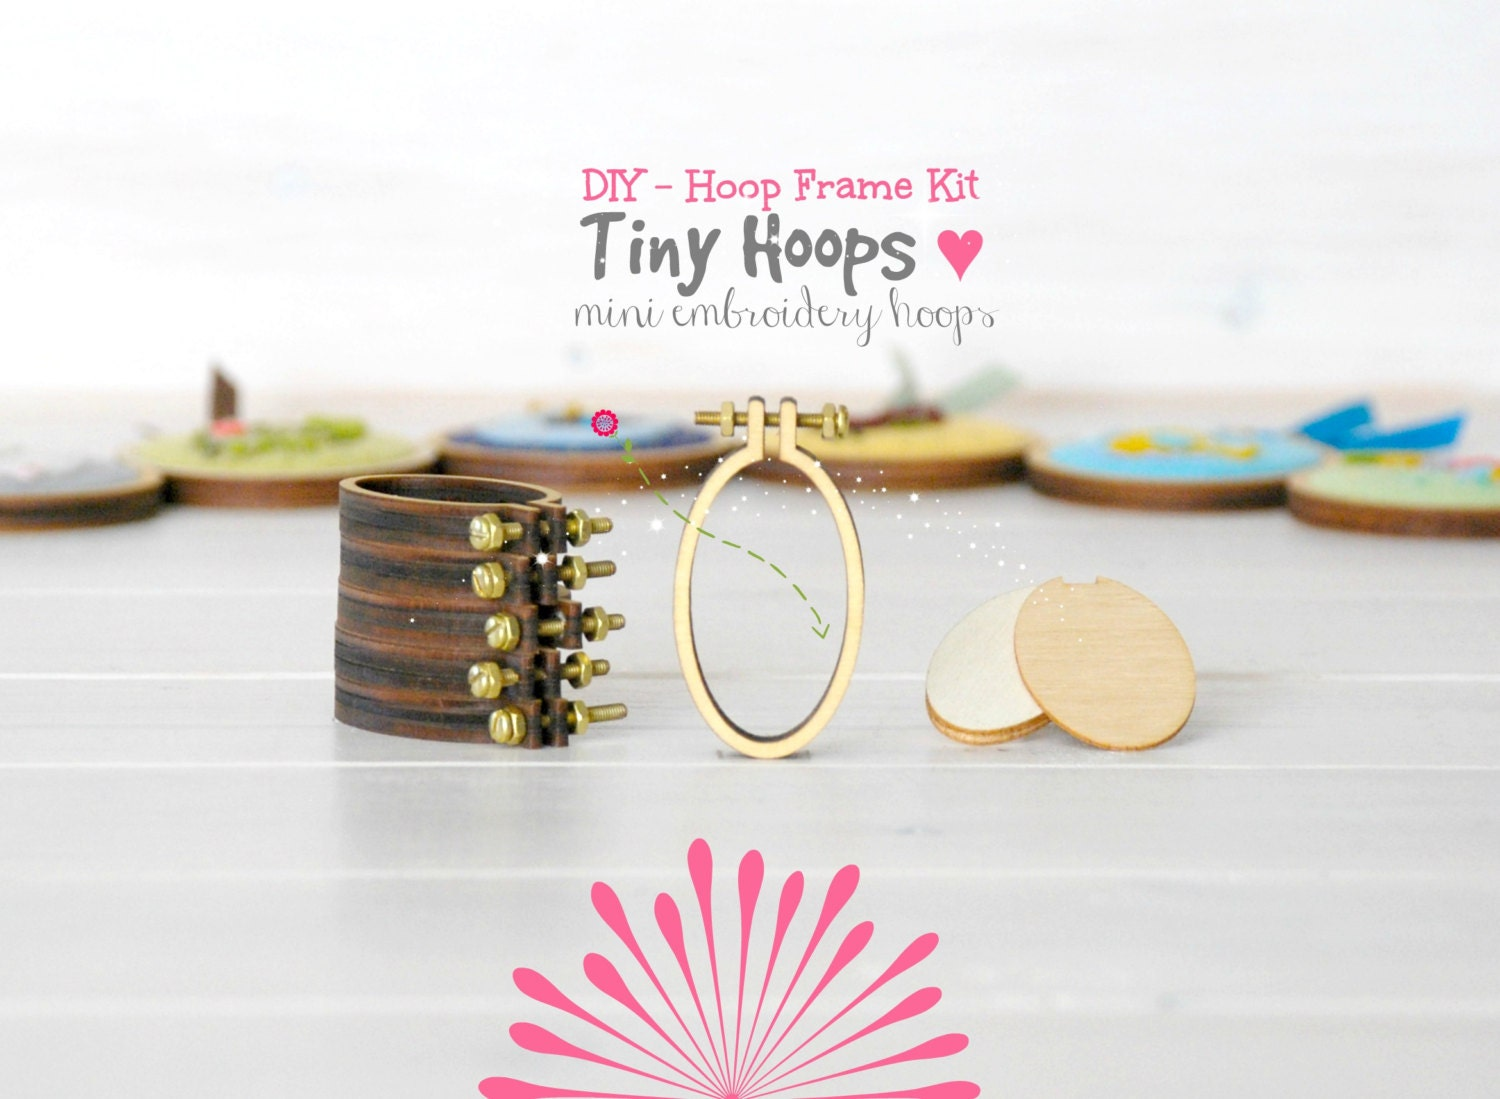 Diy tiny embroidery hoop frame kit mm